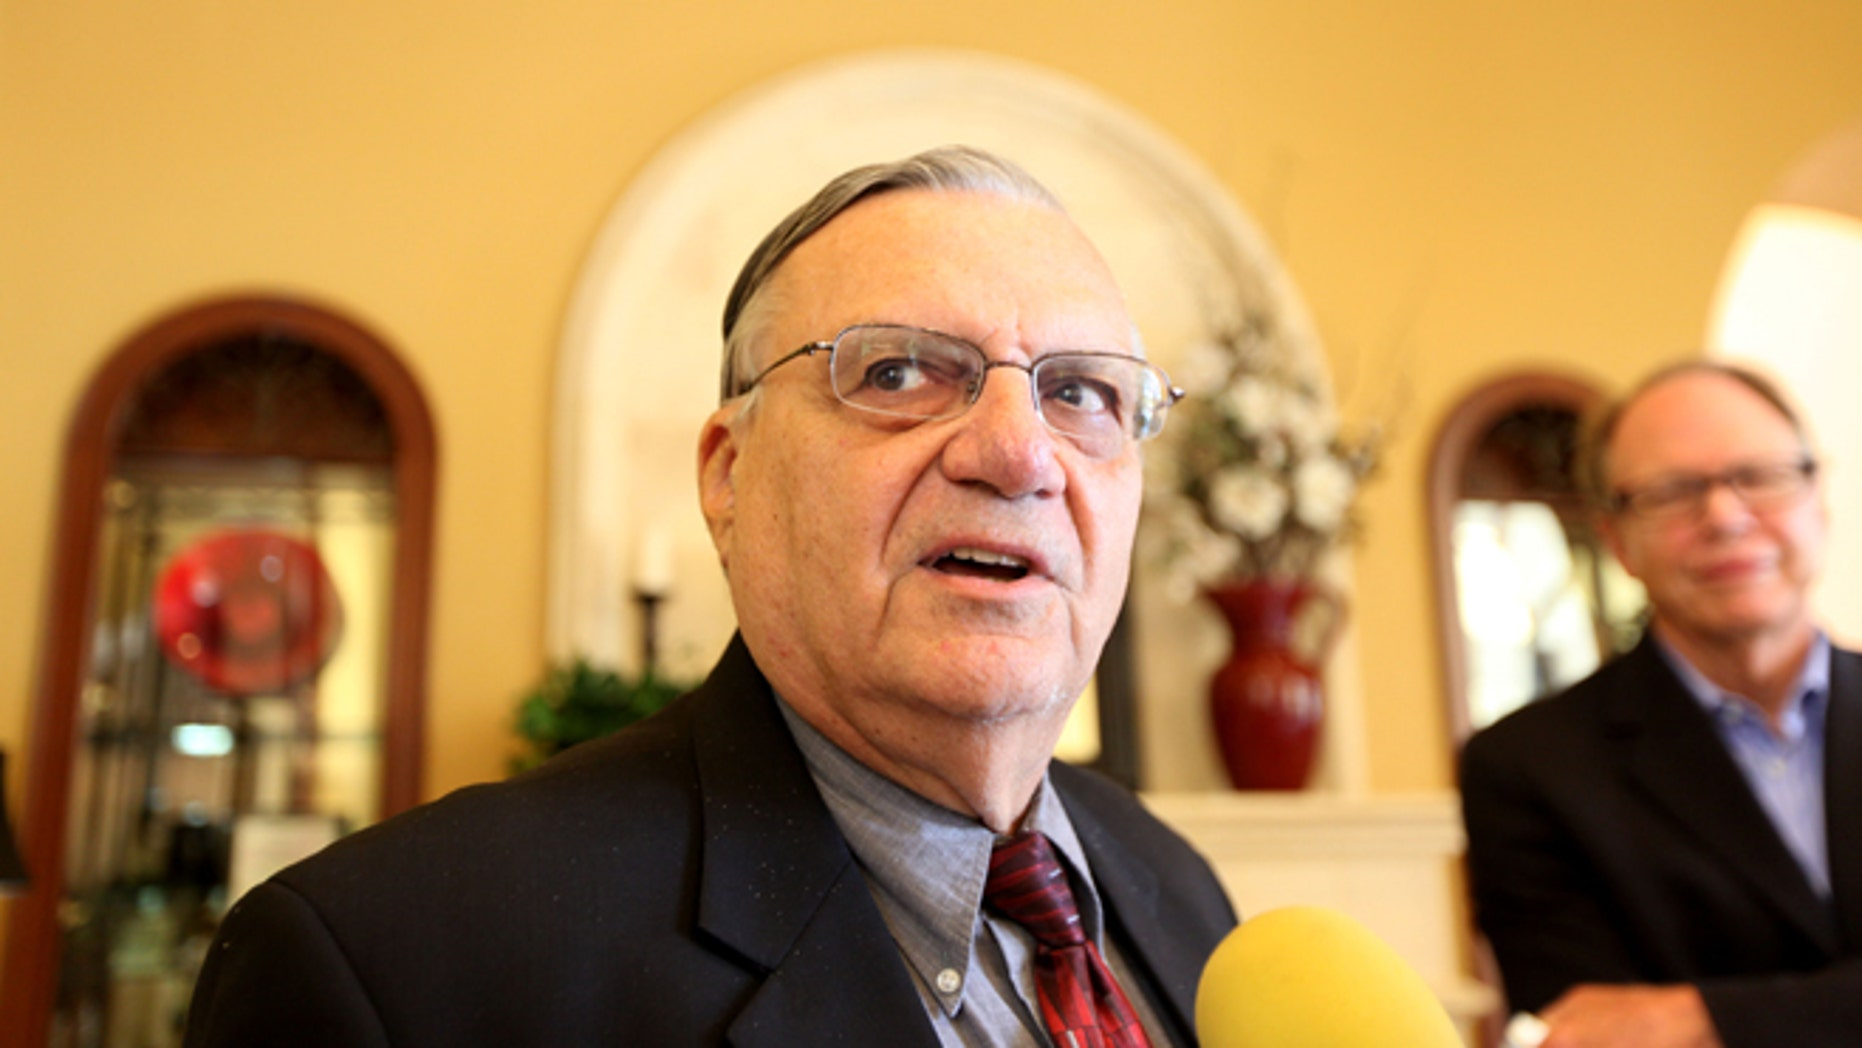 RANCHO BERNARDO, CA - AUGUST 10:  Sheriff Joe Arpaio speaks to members of the media  during a visit to the Rancho Bernardo Inn on August 10, 2010 in Rancho Bernardo, California.  Arpaio, who is Sheriff of Maricopa County in Arizona, gained national attention for using deputies to conduct raids to apprehend illegal immigrants and building large outdoor prison tents to house inmates.  (Photo by Sandy Huffaker/Getty Images)